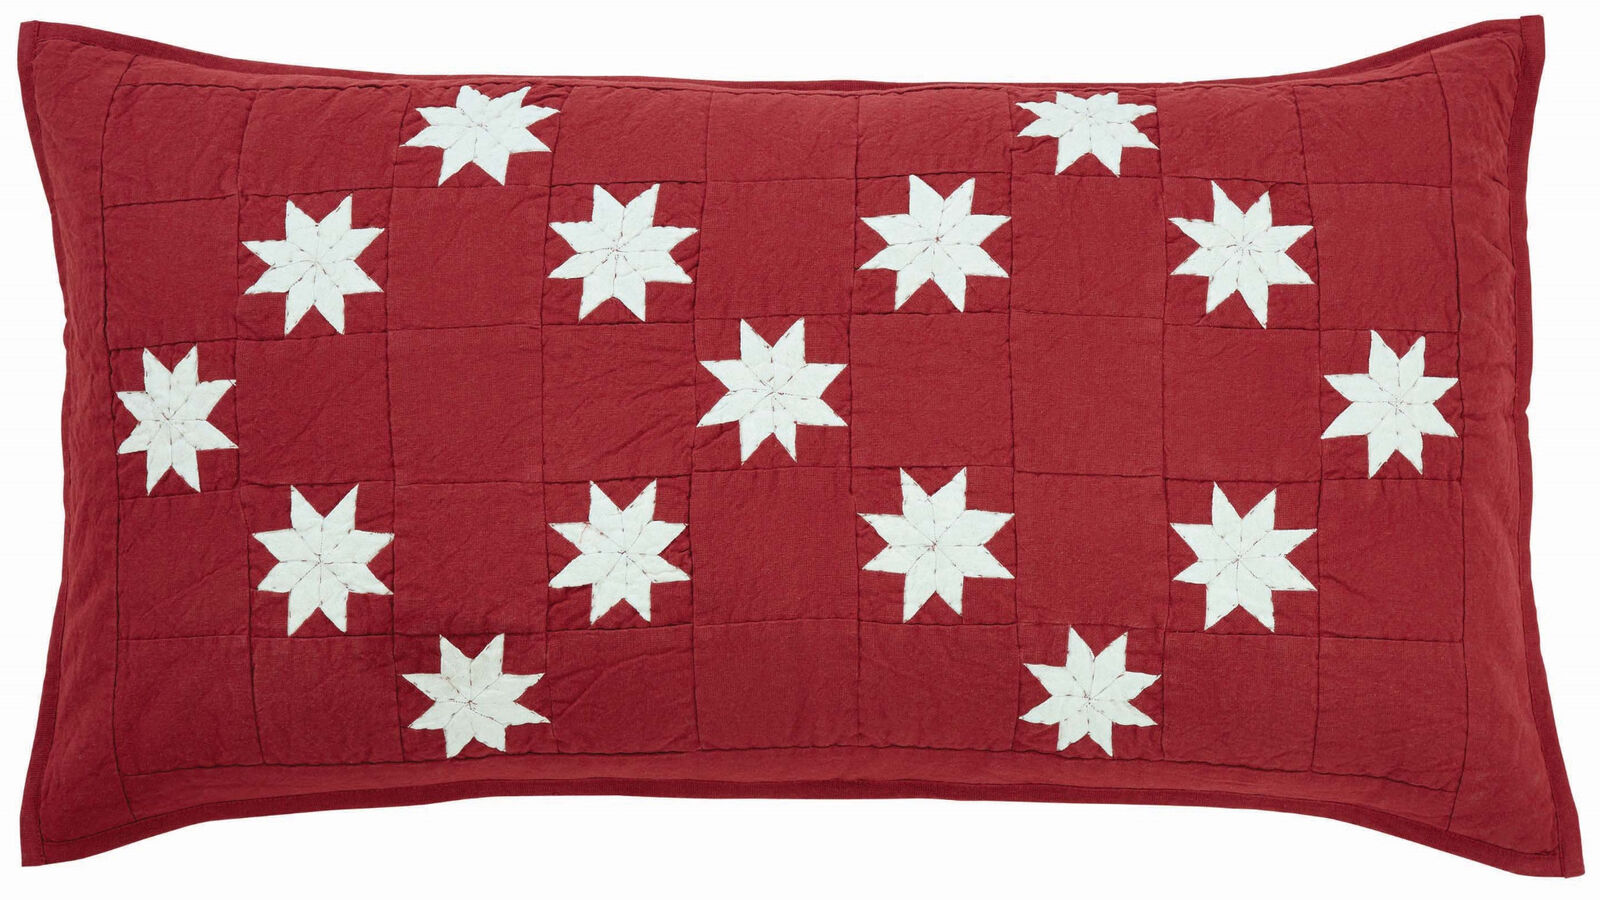 Crimson Red King Pillow Sham Hand Quilted w  Cream Snowflake 8-Point Stars Kent